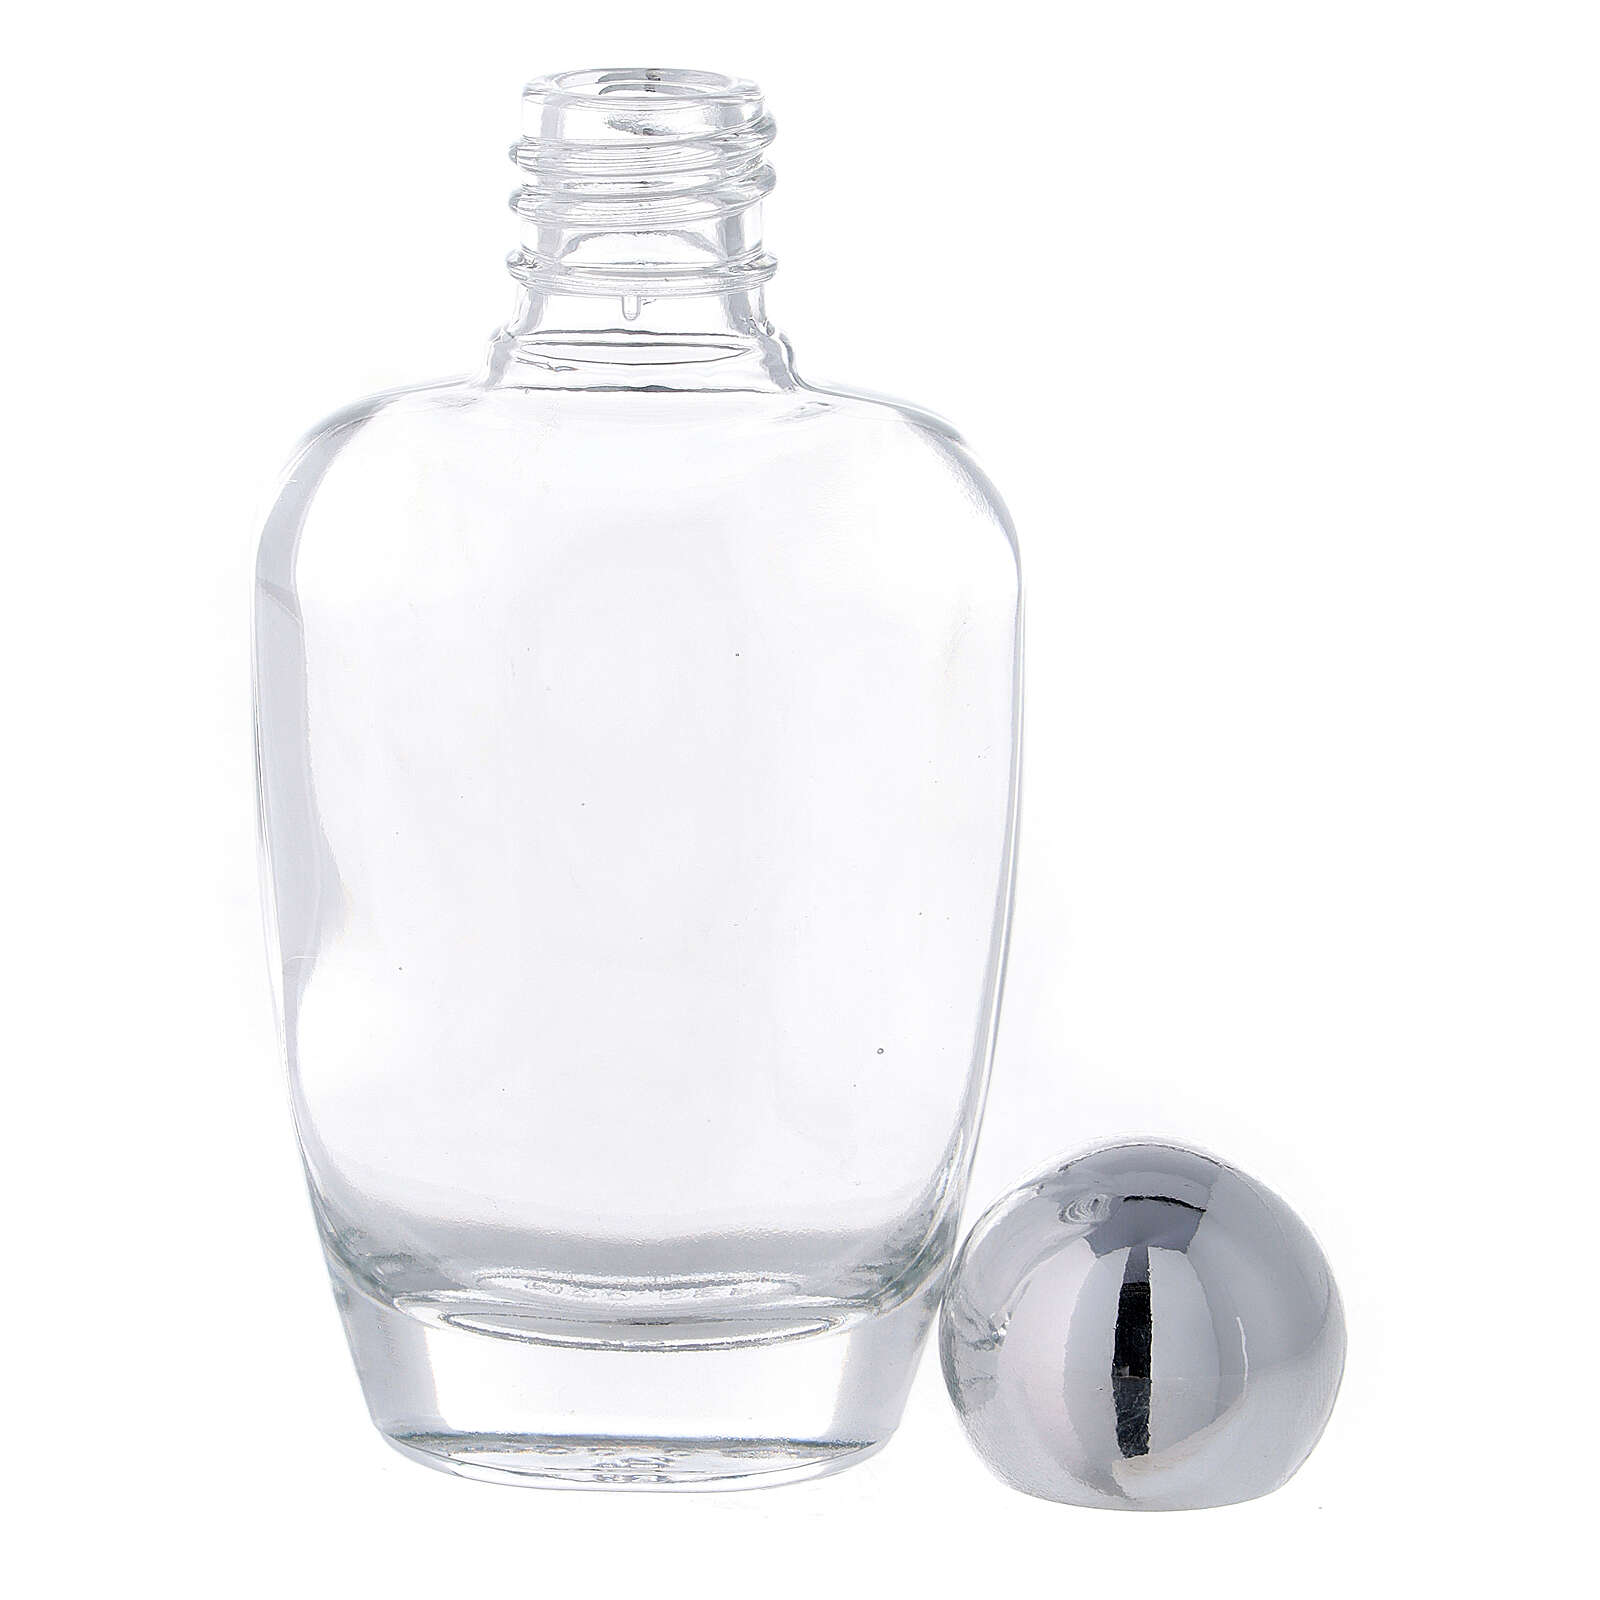 50 ml holy water glass bottle (50-PIECE PACK) 3